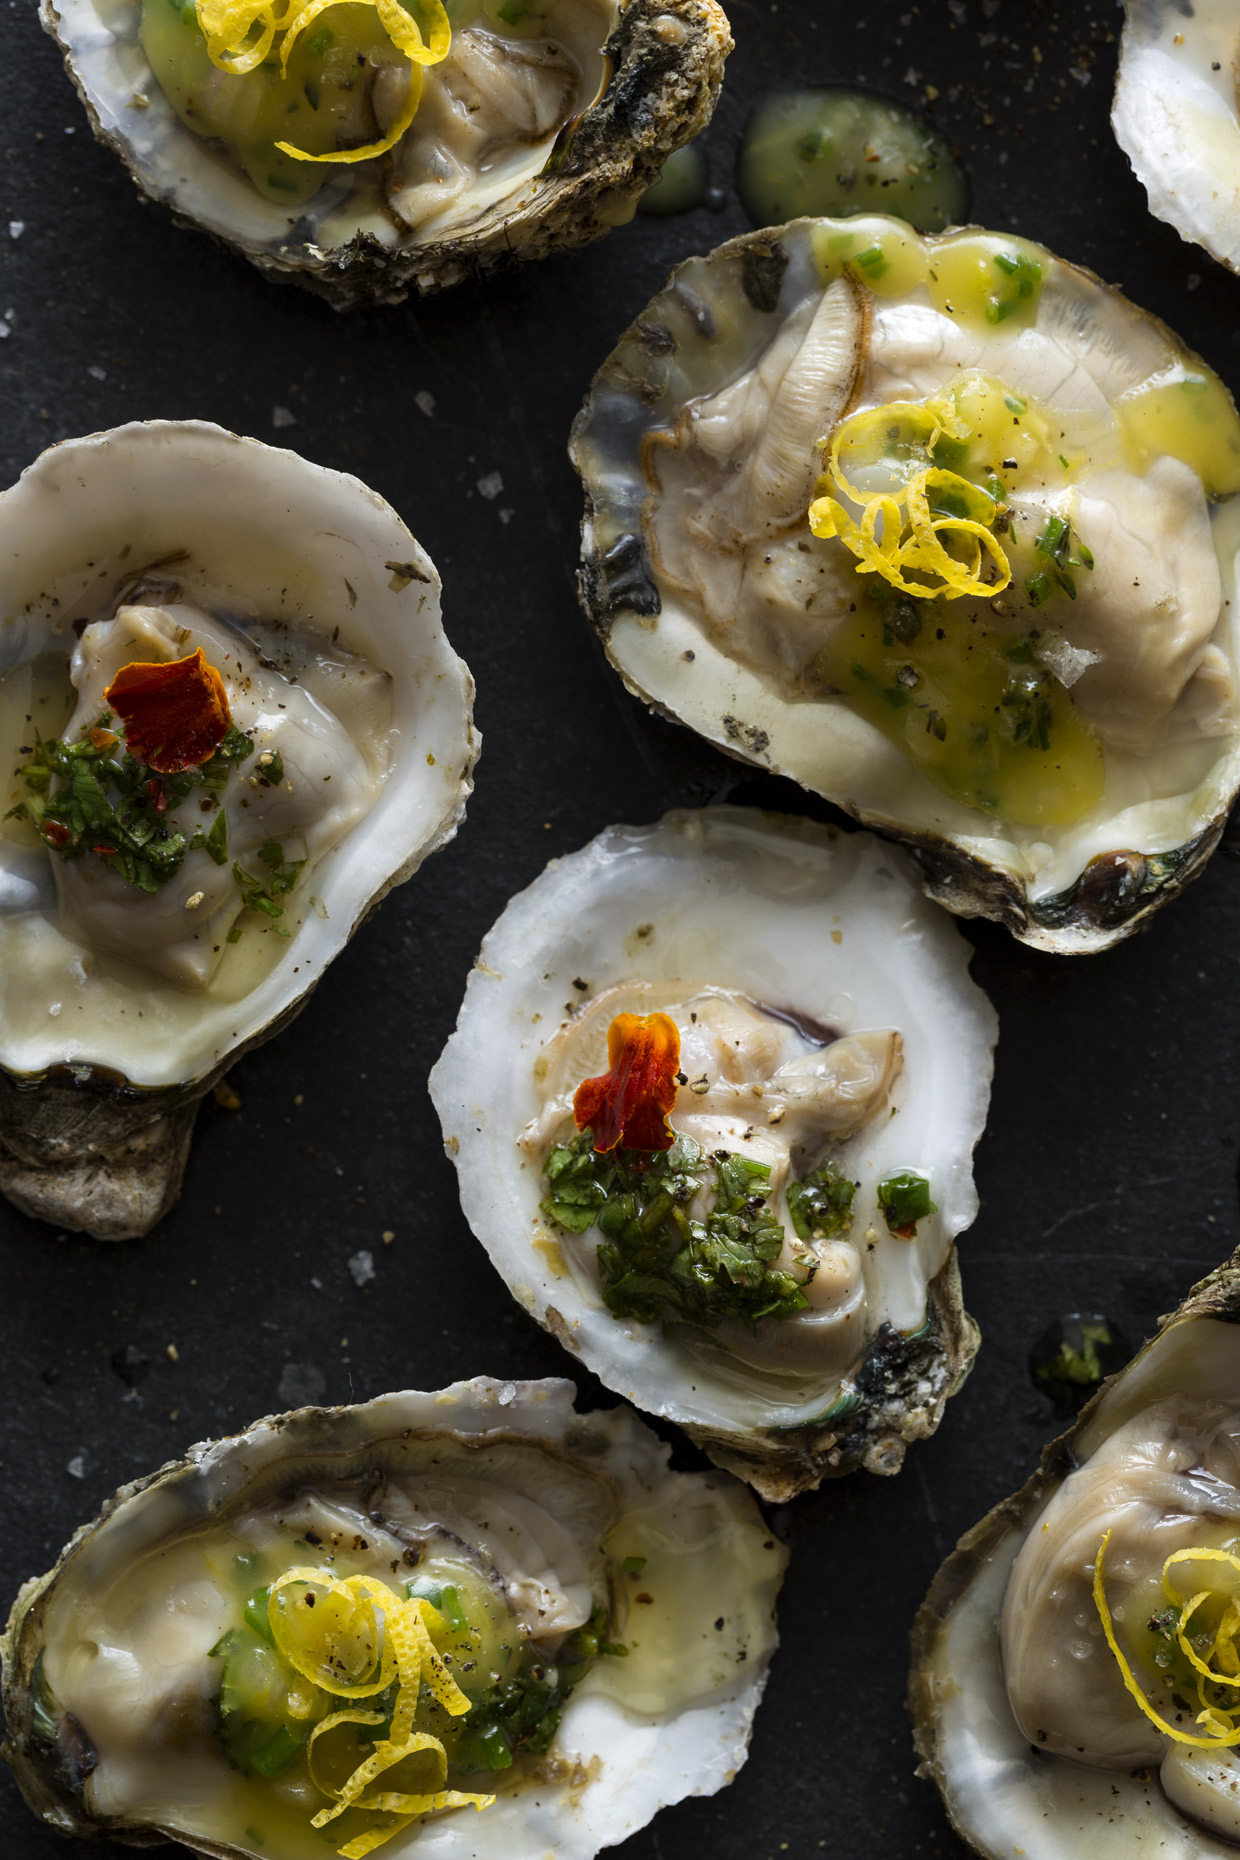 Oysters by Food Photographer Los Angeles, CA